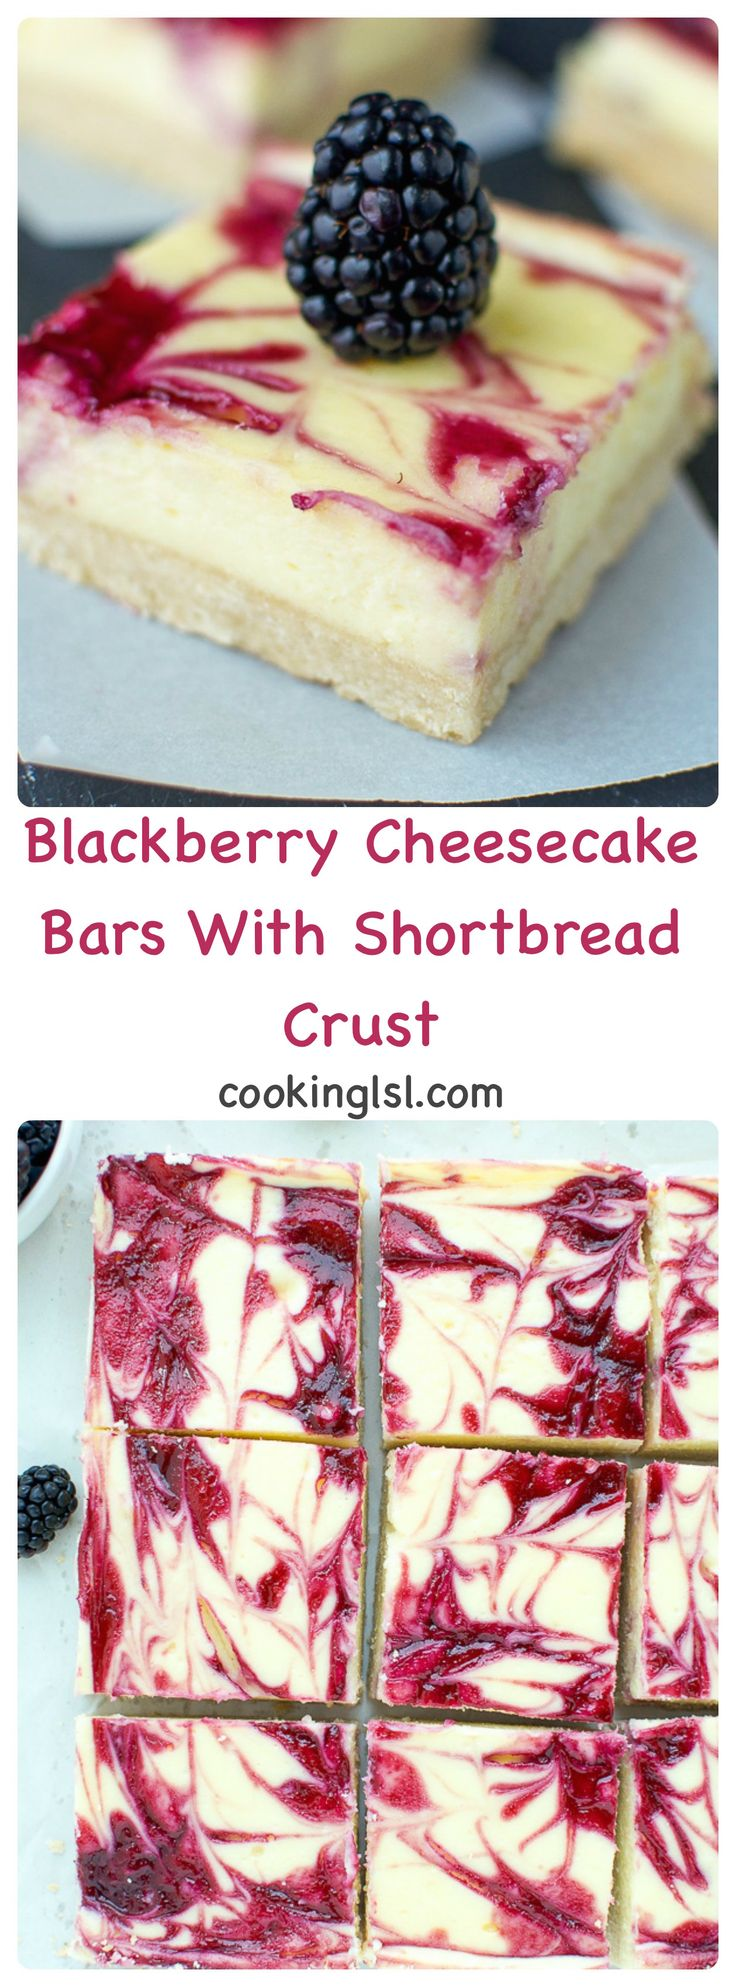 Blackberry Cheesecake Bars With Shortbread Crust #cheesecake #blackberry